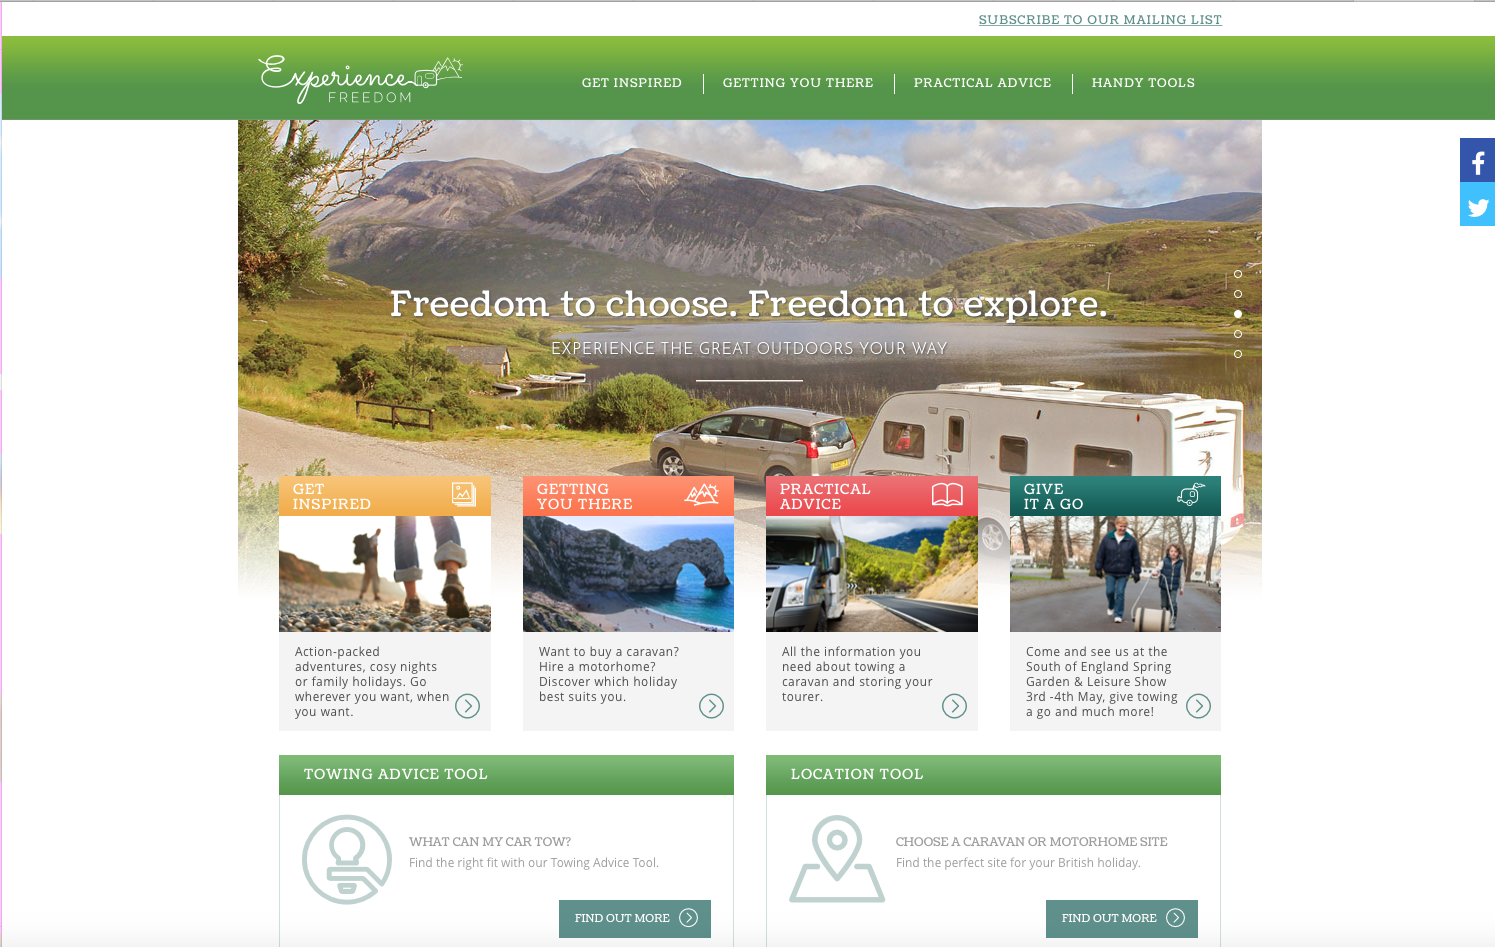 Experience freedom website